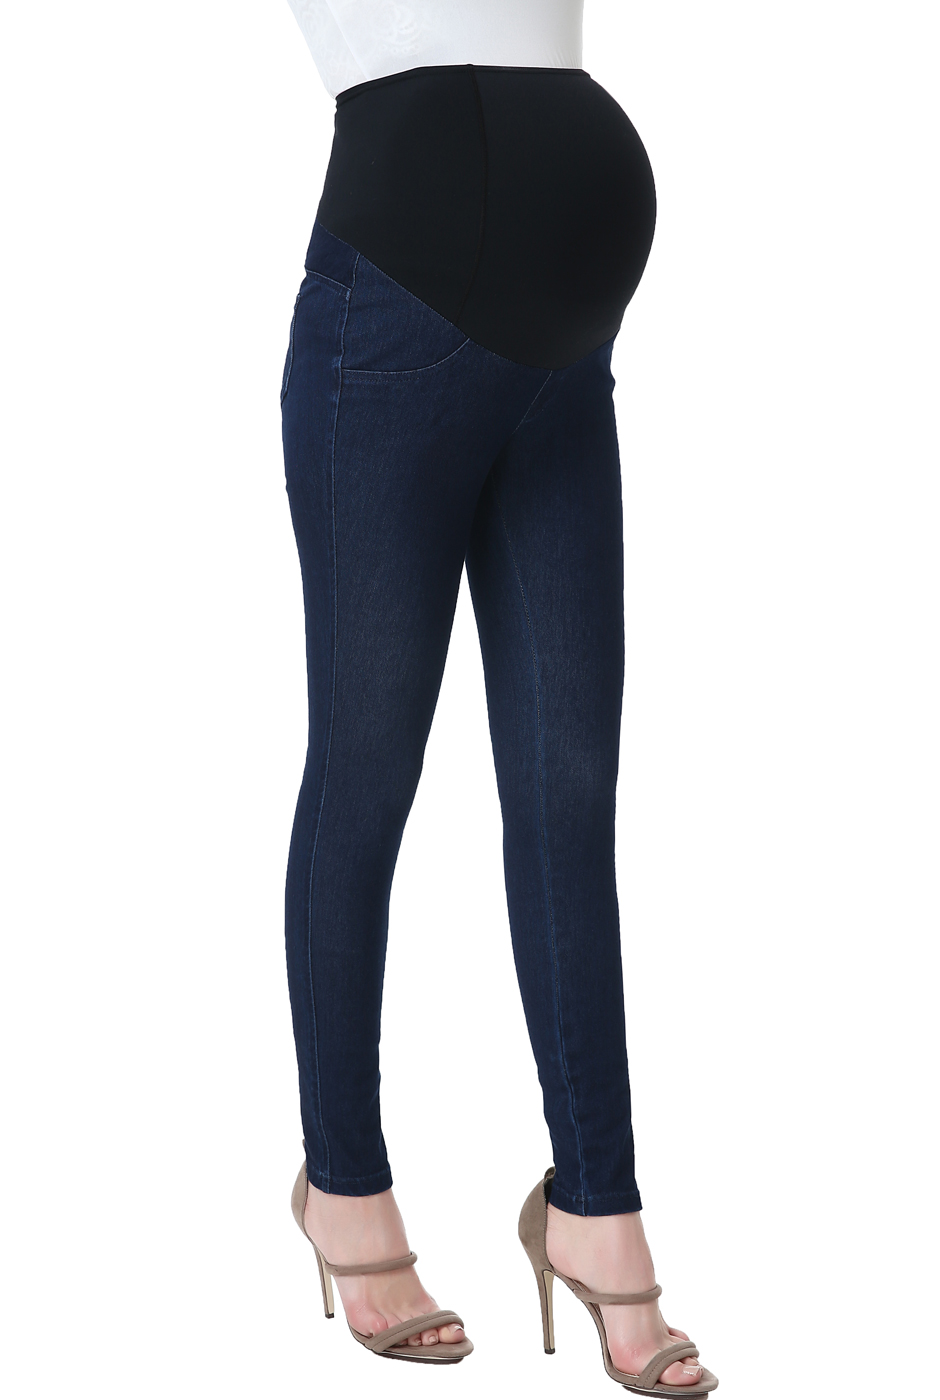 "Maternity Women's Jeggings (28.5"" Inseam) - Denim Blue M"